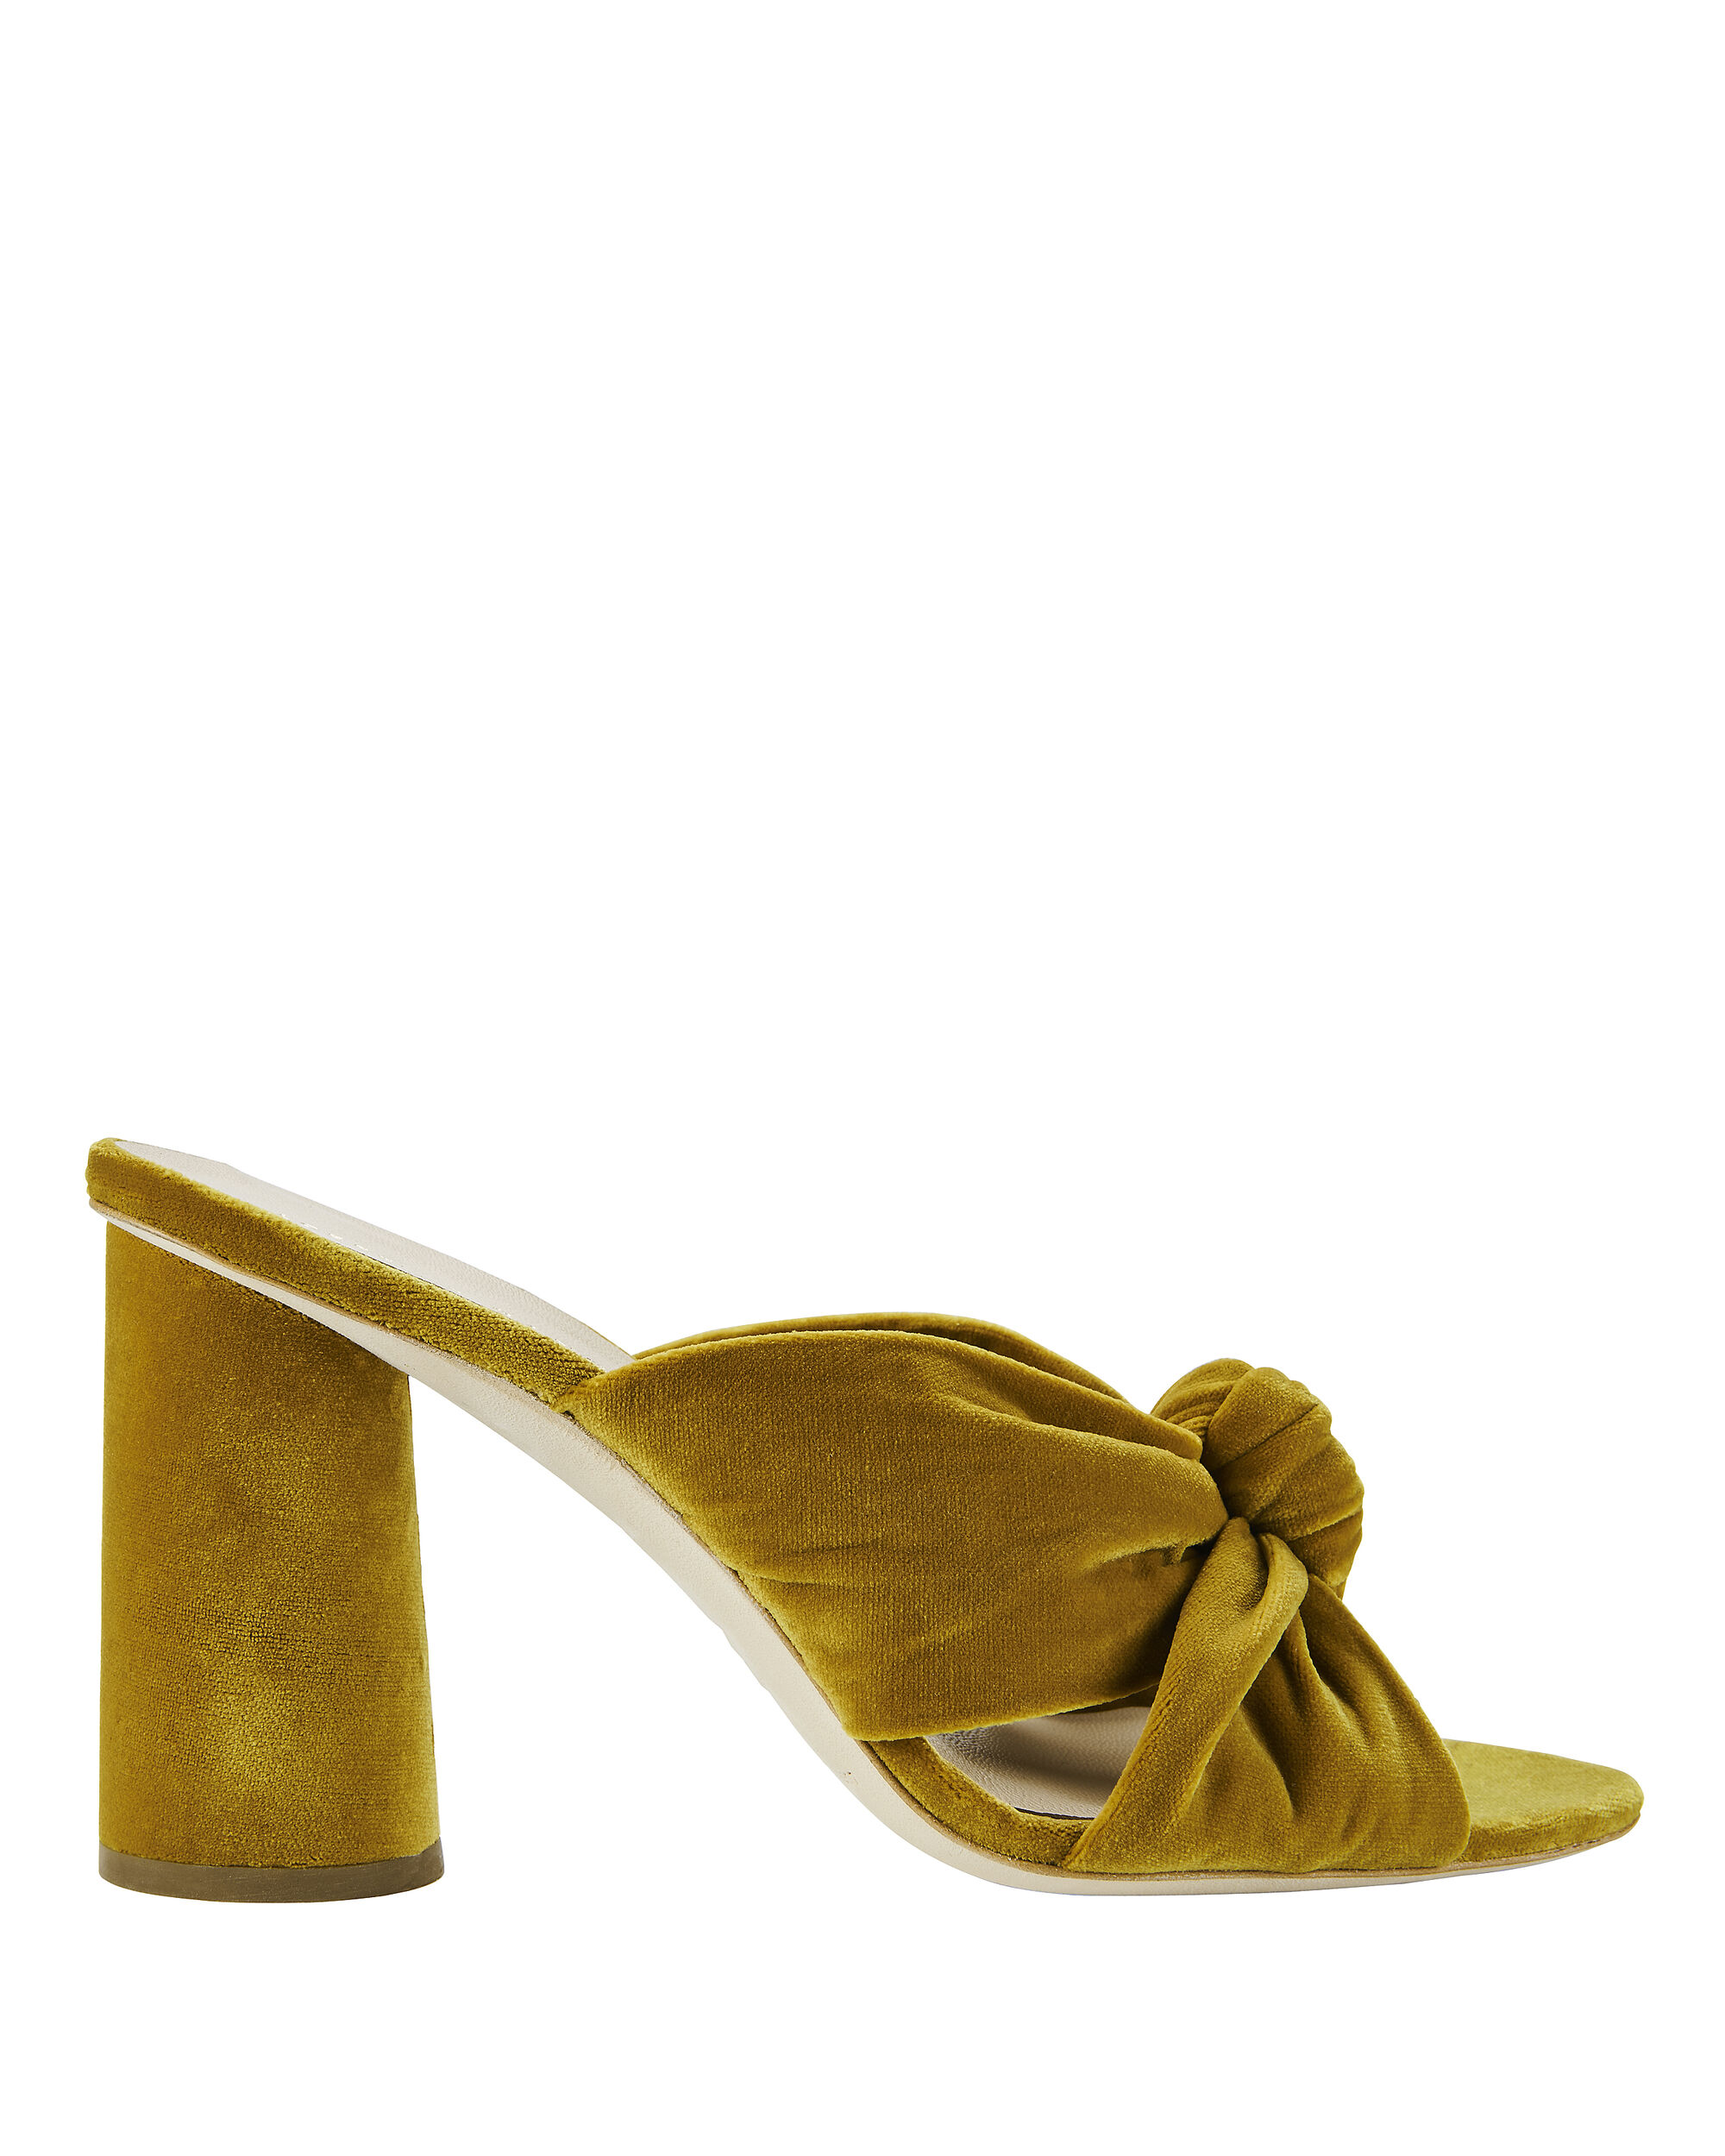 Coco Velvet Marigold Sandals, YELLOW, hi-res